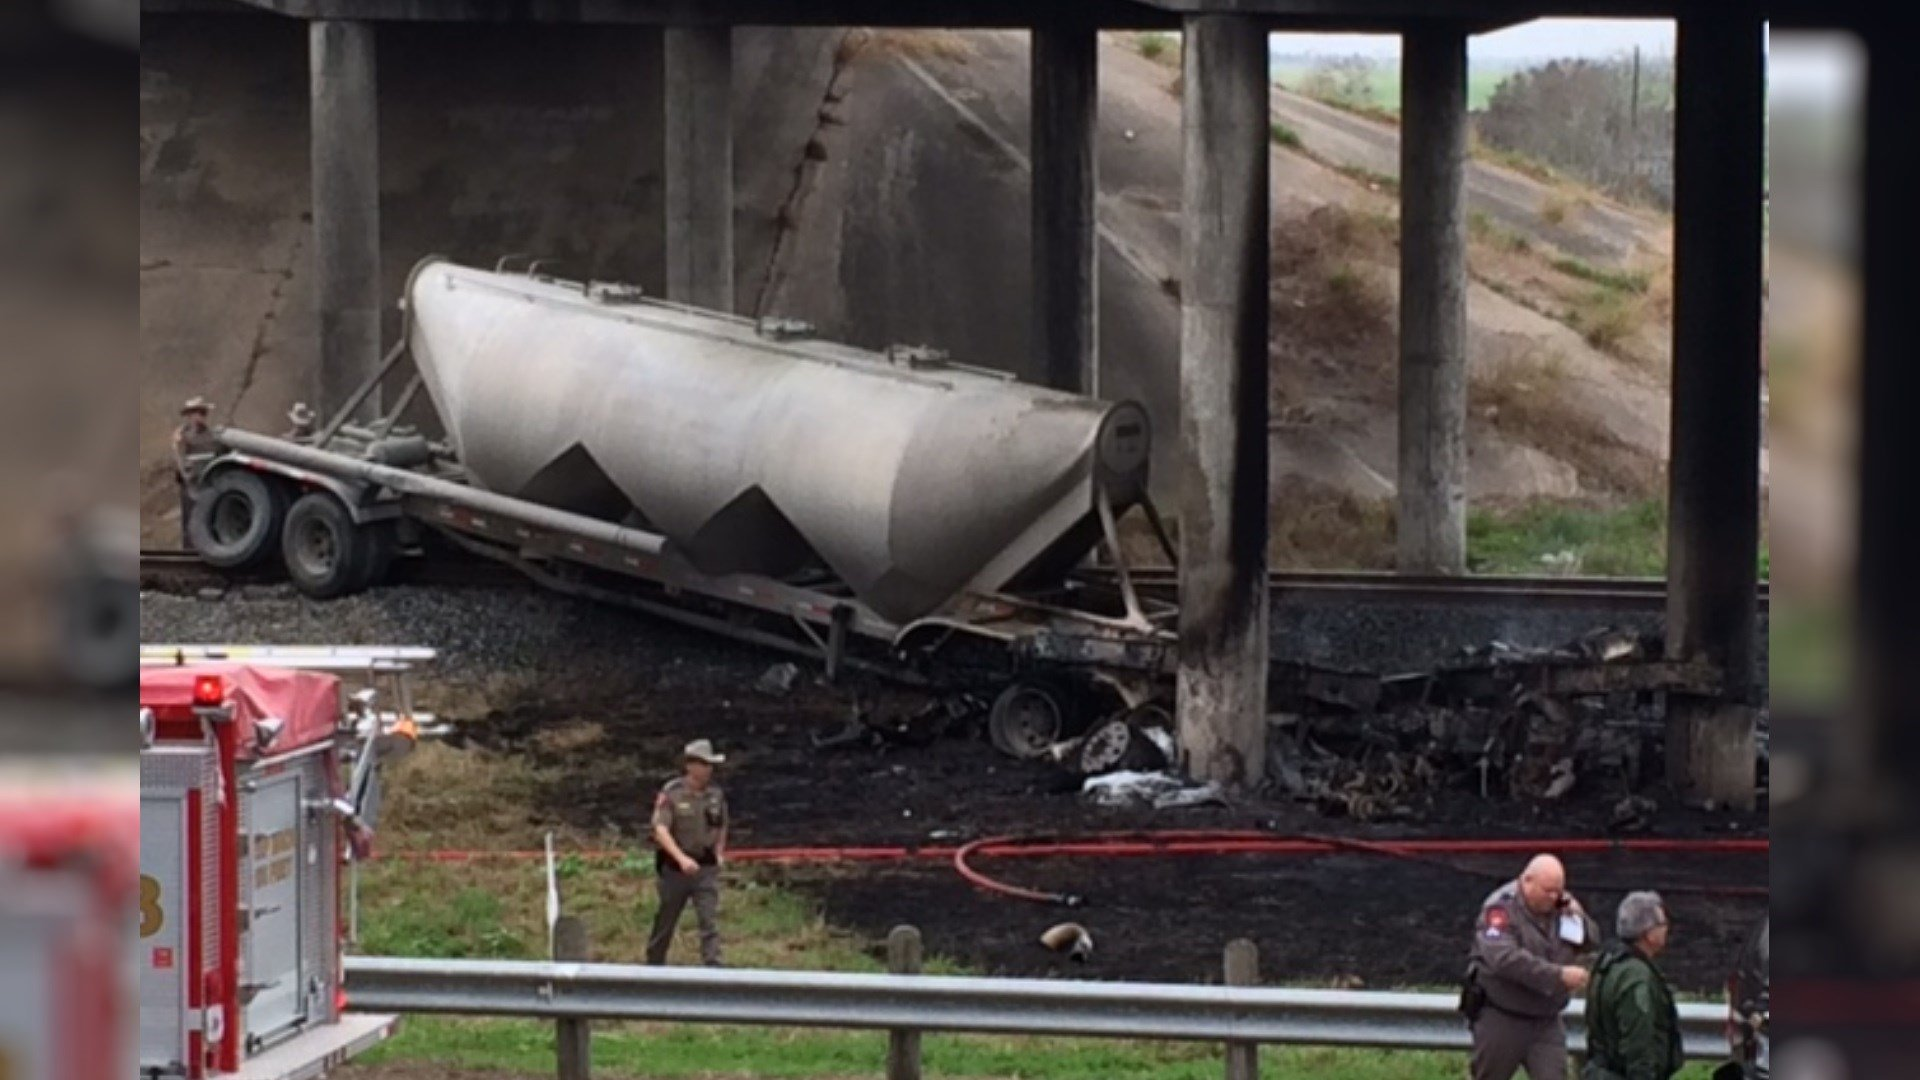 Semi truck burst into flames after crash on I-37.